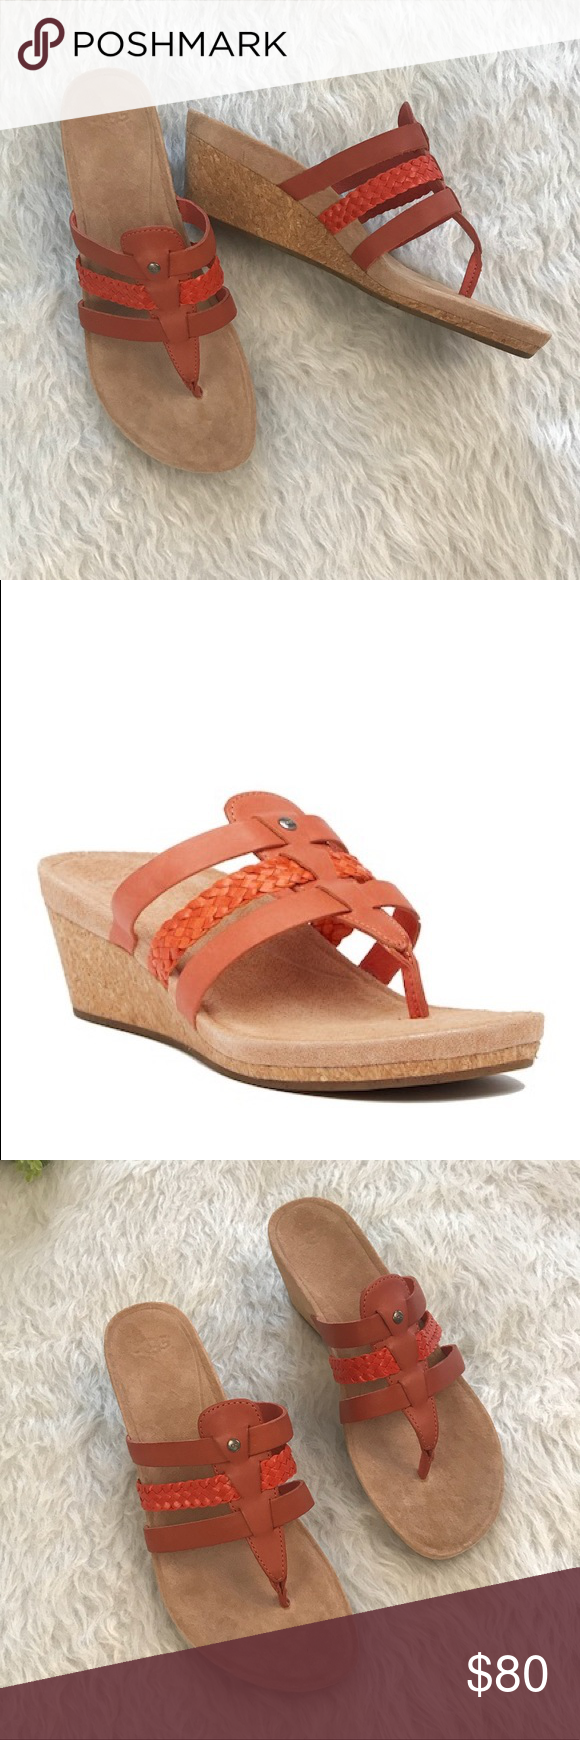 507eb7d0de NIB Ugg Maddie Wedge Sandal The UGG Maddie Wedge Sandal features a cushioned  cork wedge that